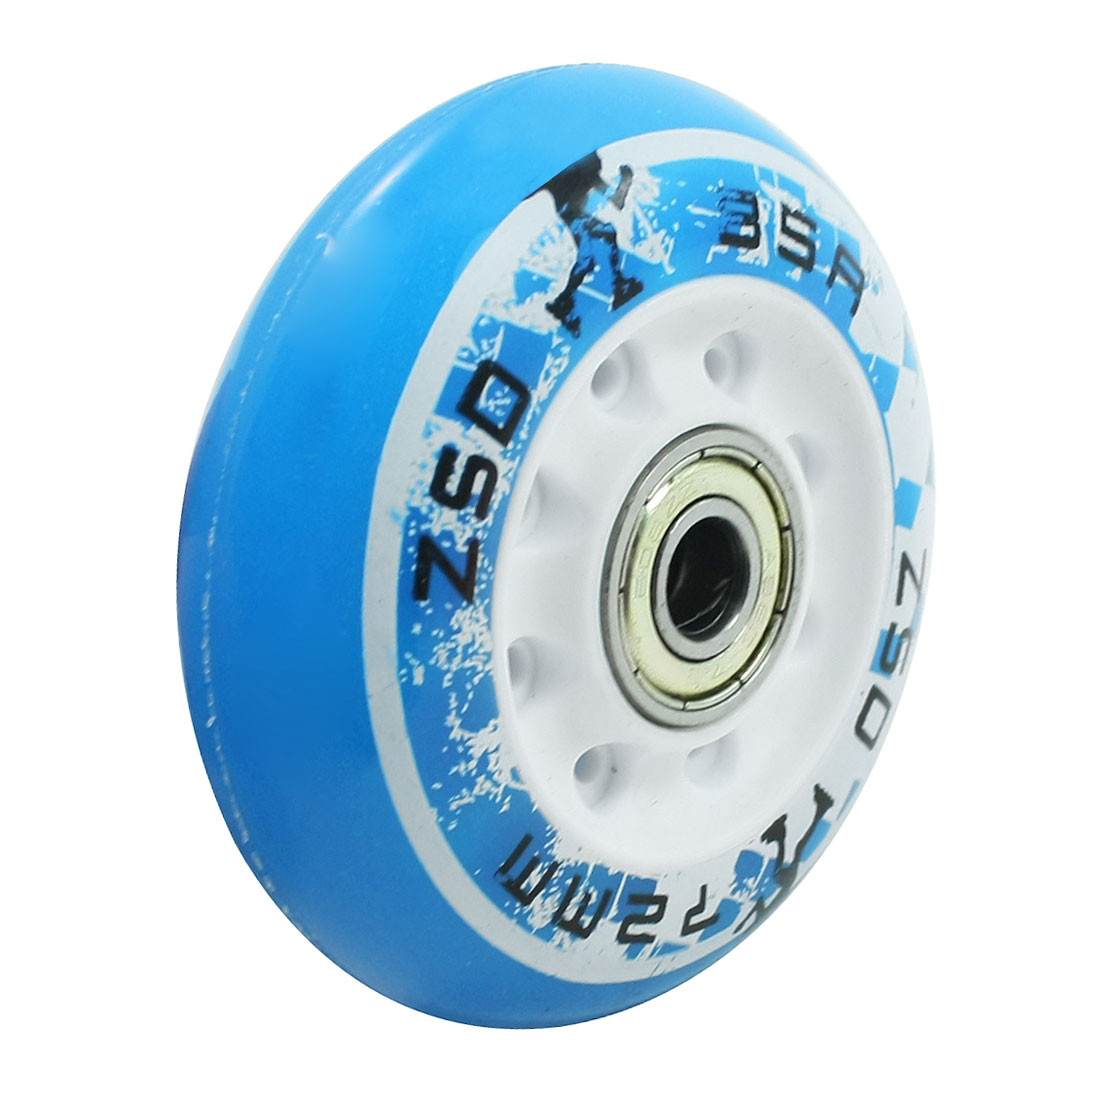 "Blue Skating Shoes Plasitc 2.8"" Diameter Bearing Roller Wheel"